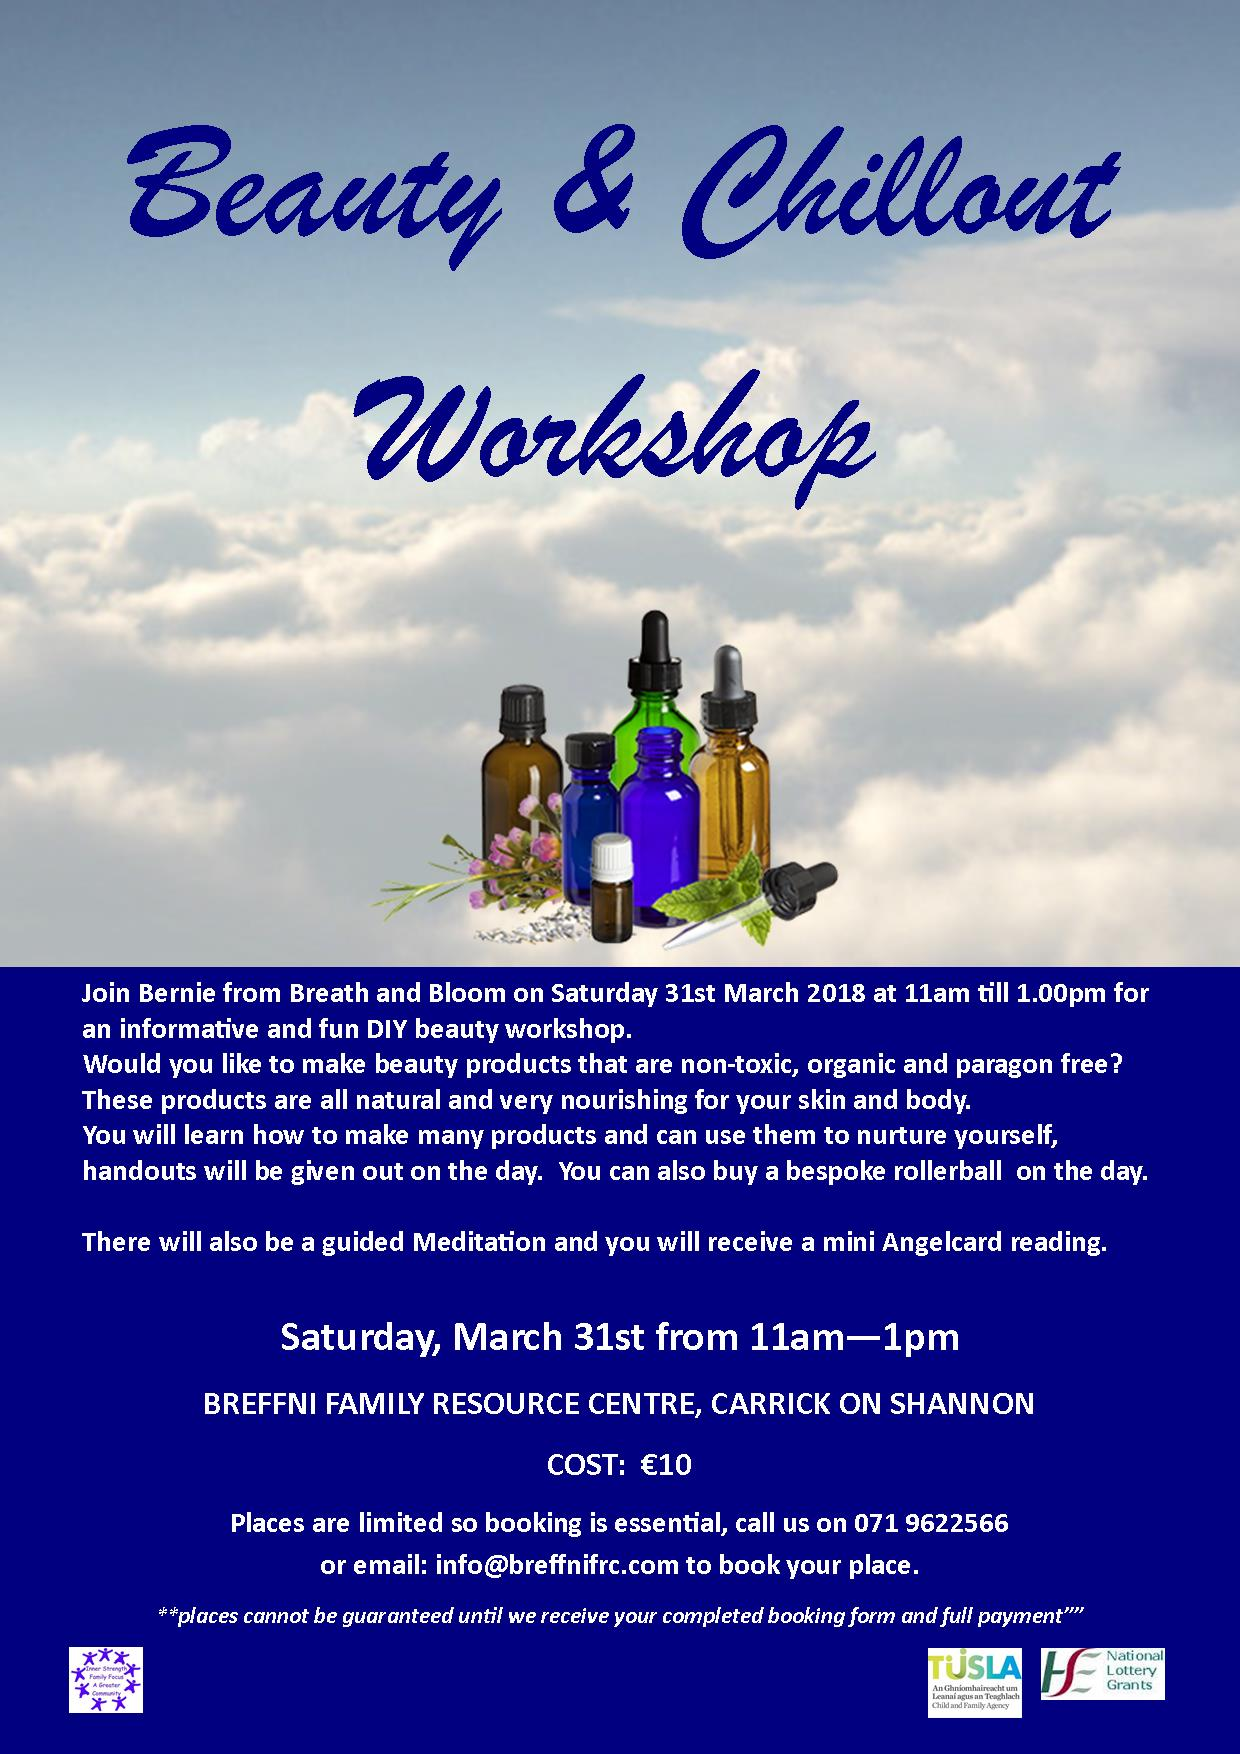 MyCarrick Event - Breffni Family Resource Centre - Beauty & Chillout Workshop